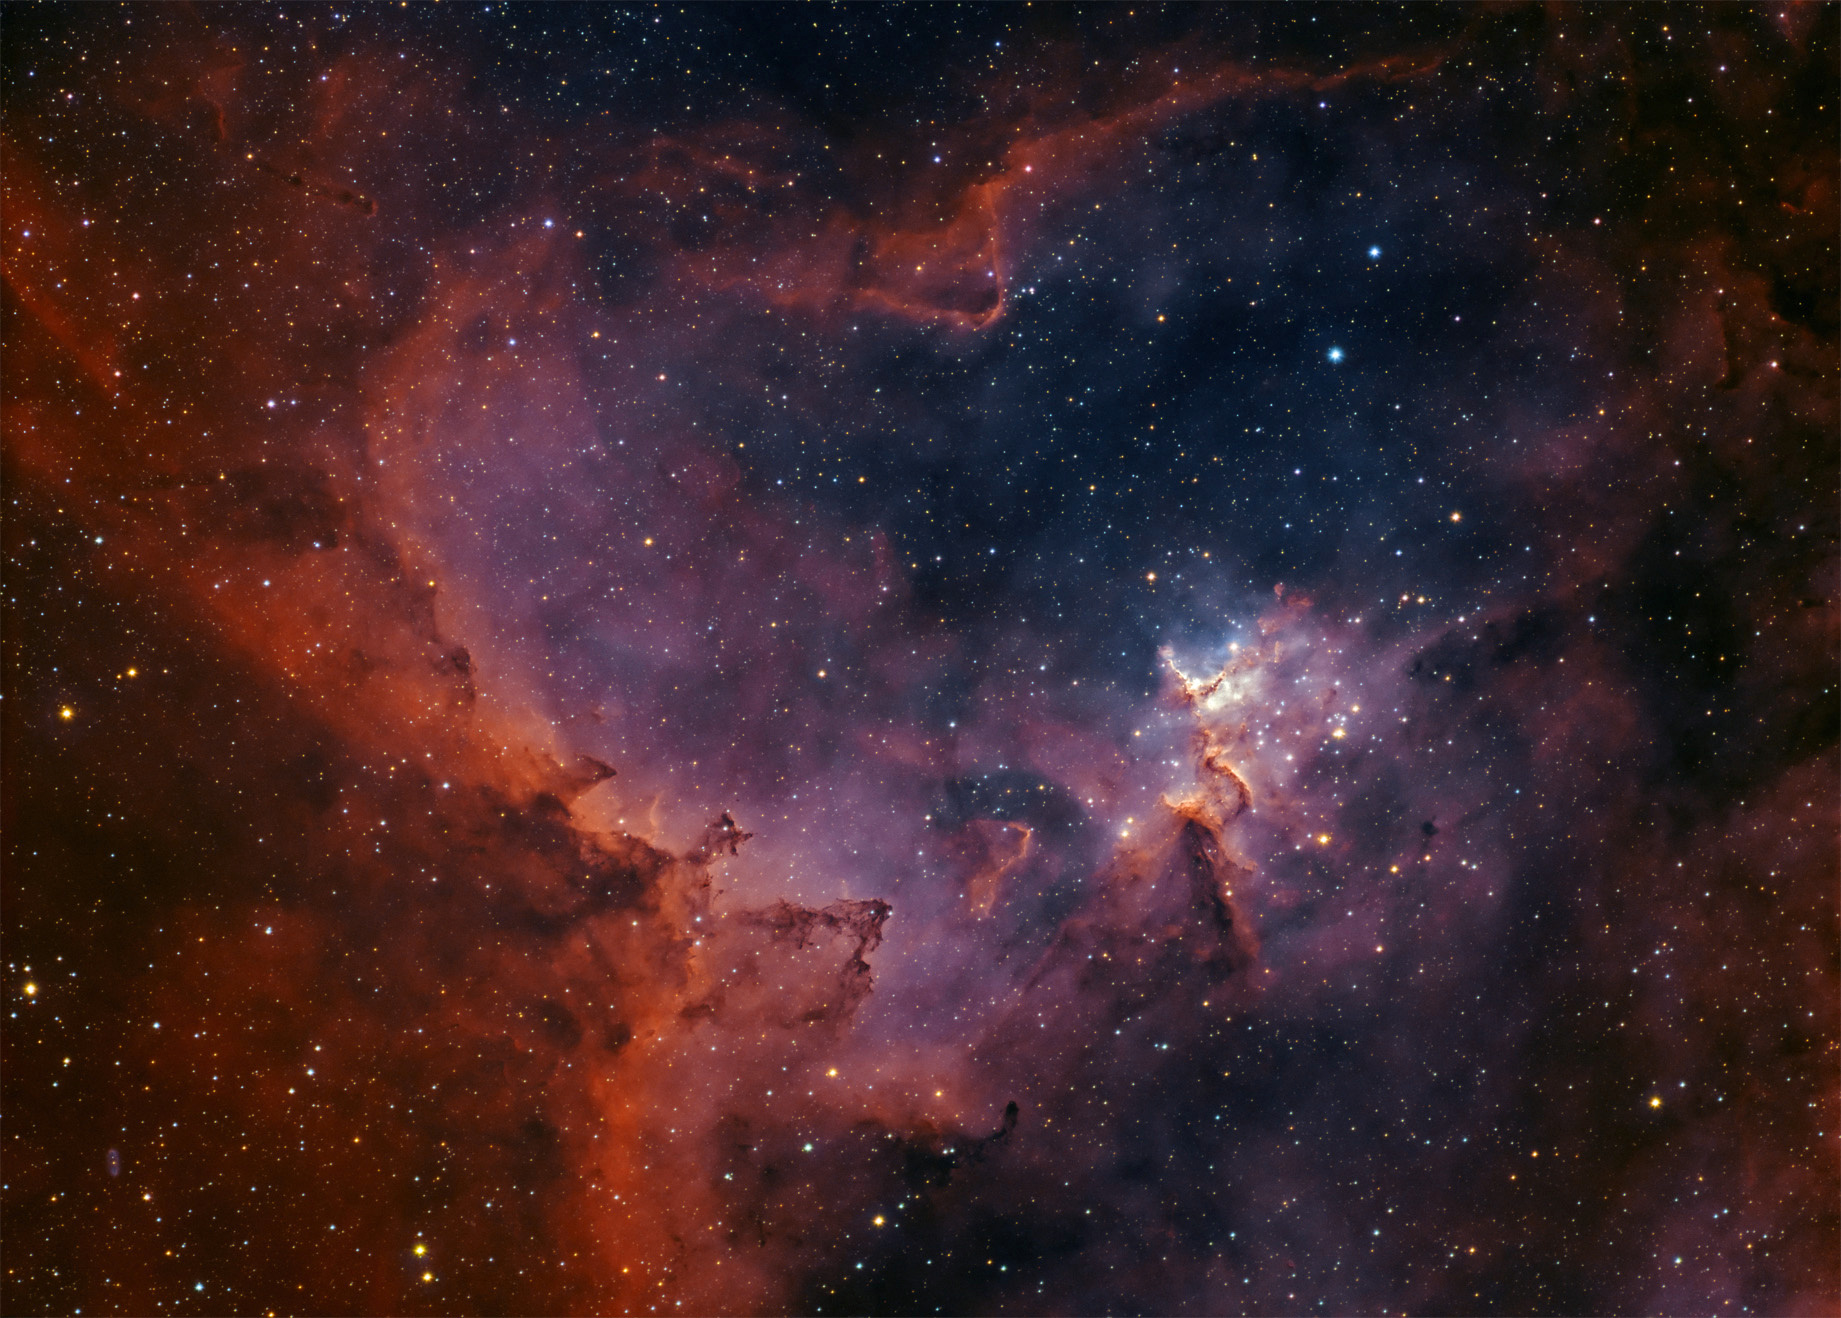 Melotte 15 and WeBo 1 Date:       January 2017 Location:   Nieborowice, Poland Telescope:  TS130/910 APO Camera:     QHY163M, gain 0 Mount:      SW EQ6 Guiding:    SW 80/400 + ASI290MM Exposure:  HaOiiiRGB 15 hours total